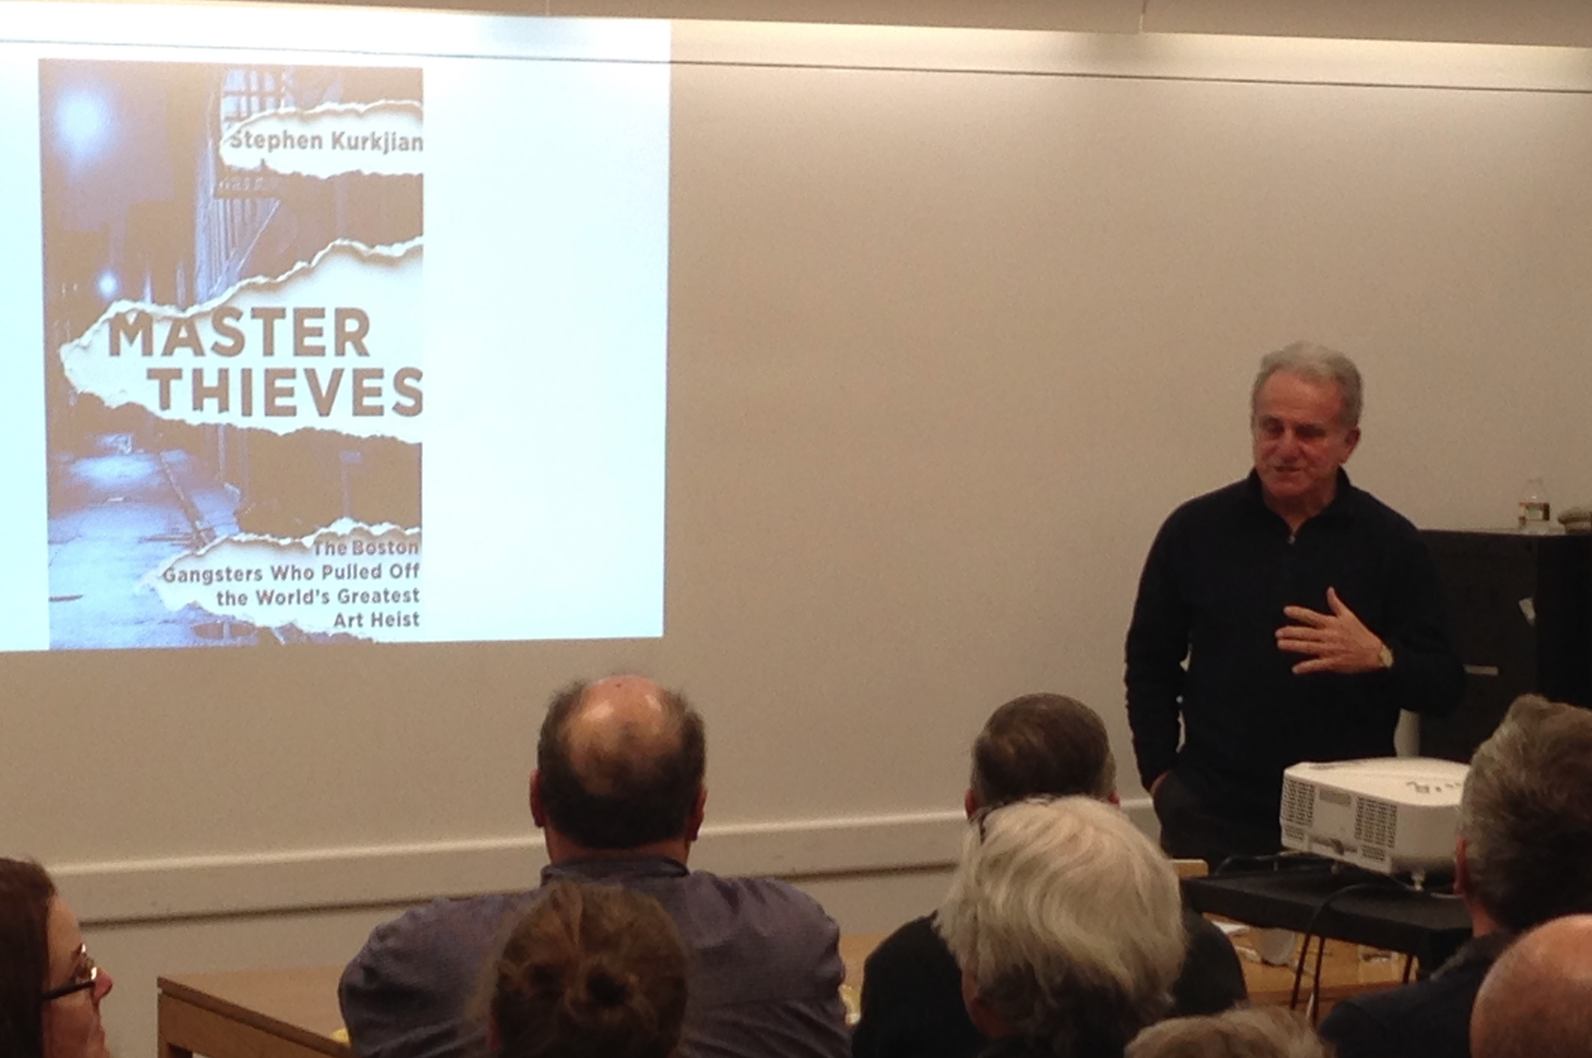 Stephen Kurkjian discussing his book, Master Thieves: The Boston Gangsters Who Pulled Off the Greatest Art heist in the World.